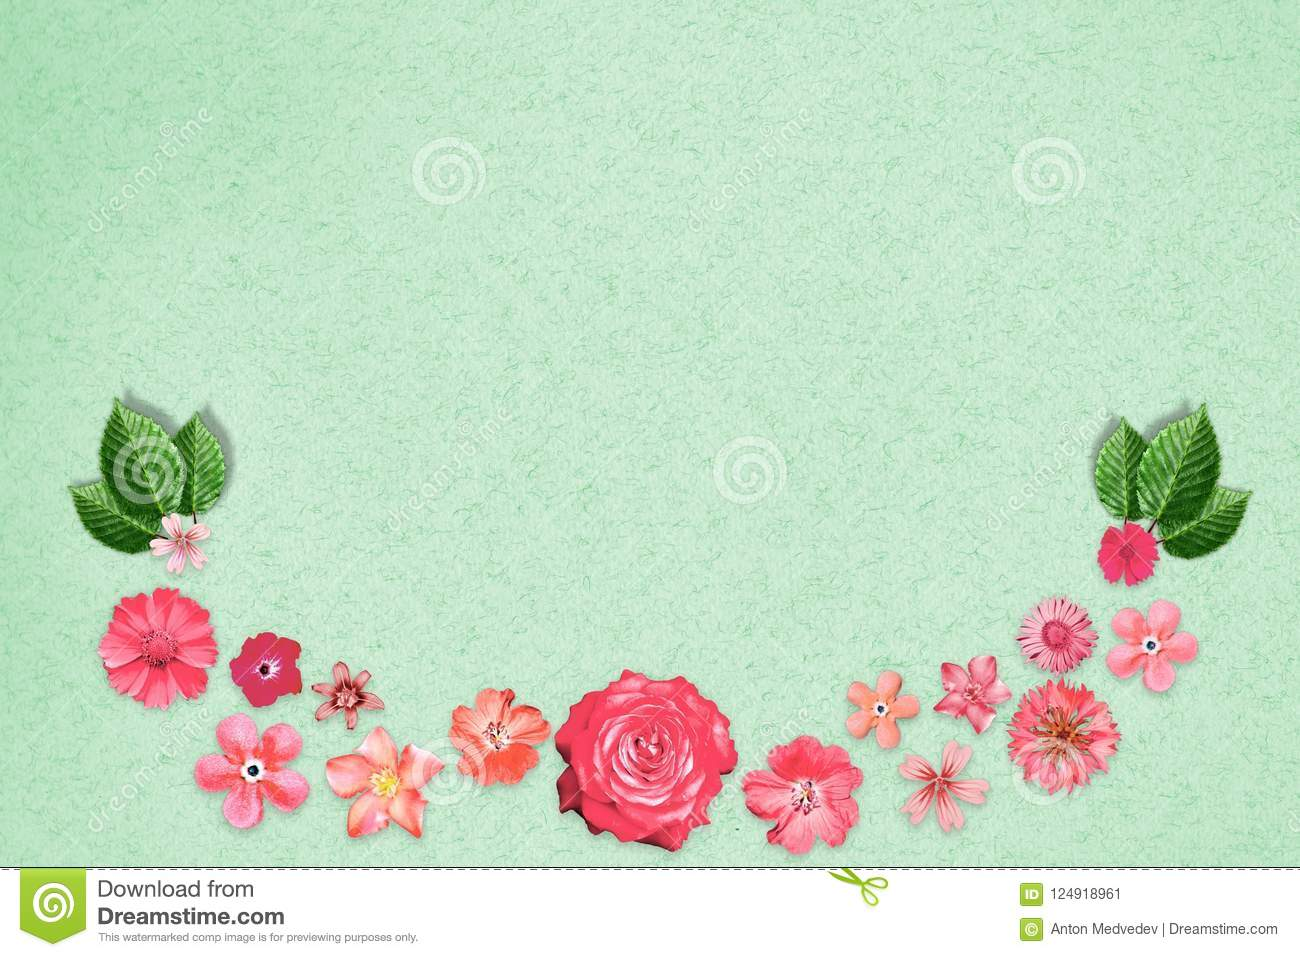 Beautiful flower design frame with empty in center on green design download beautiful flower design frame with empty in center on green design paper background floral izmirmasajfo